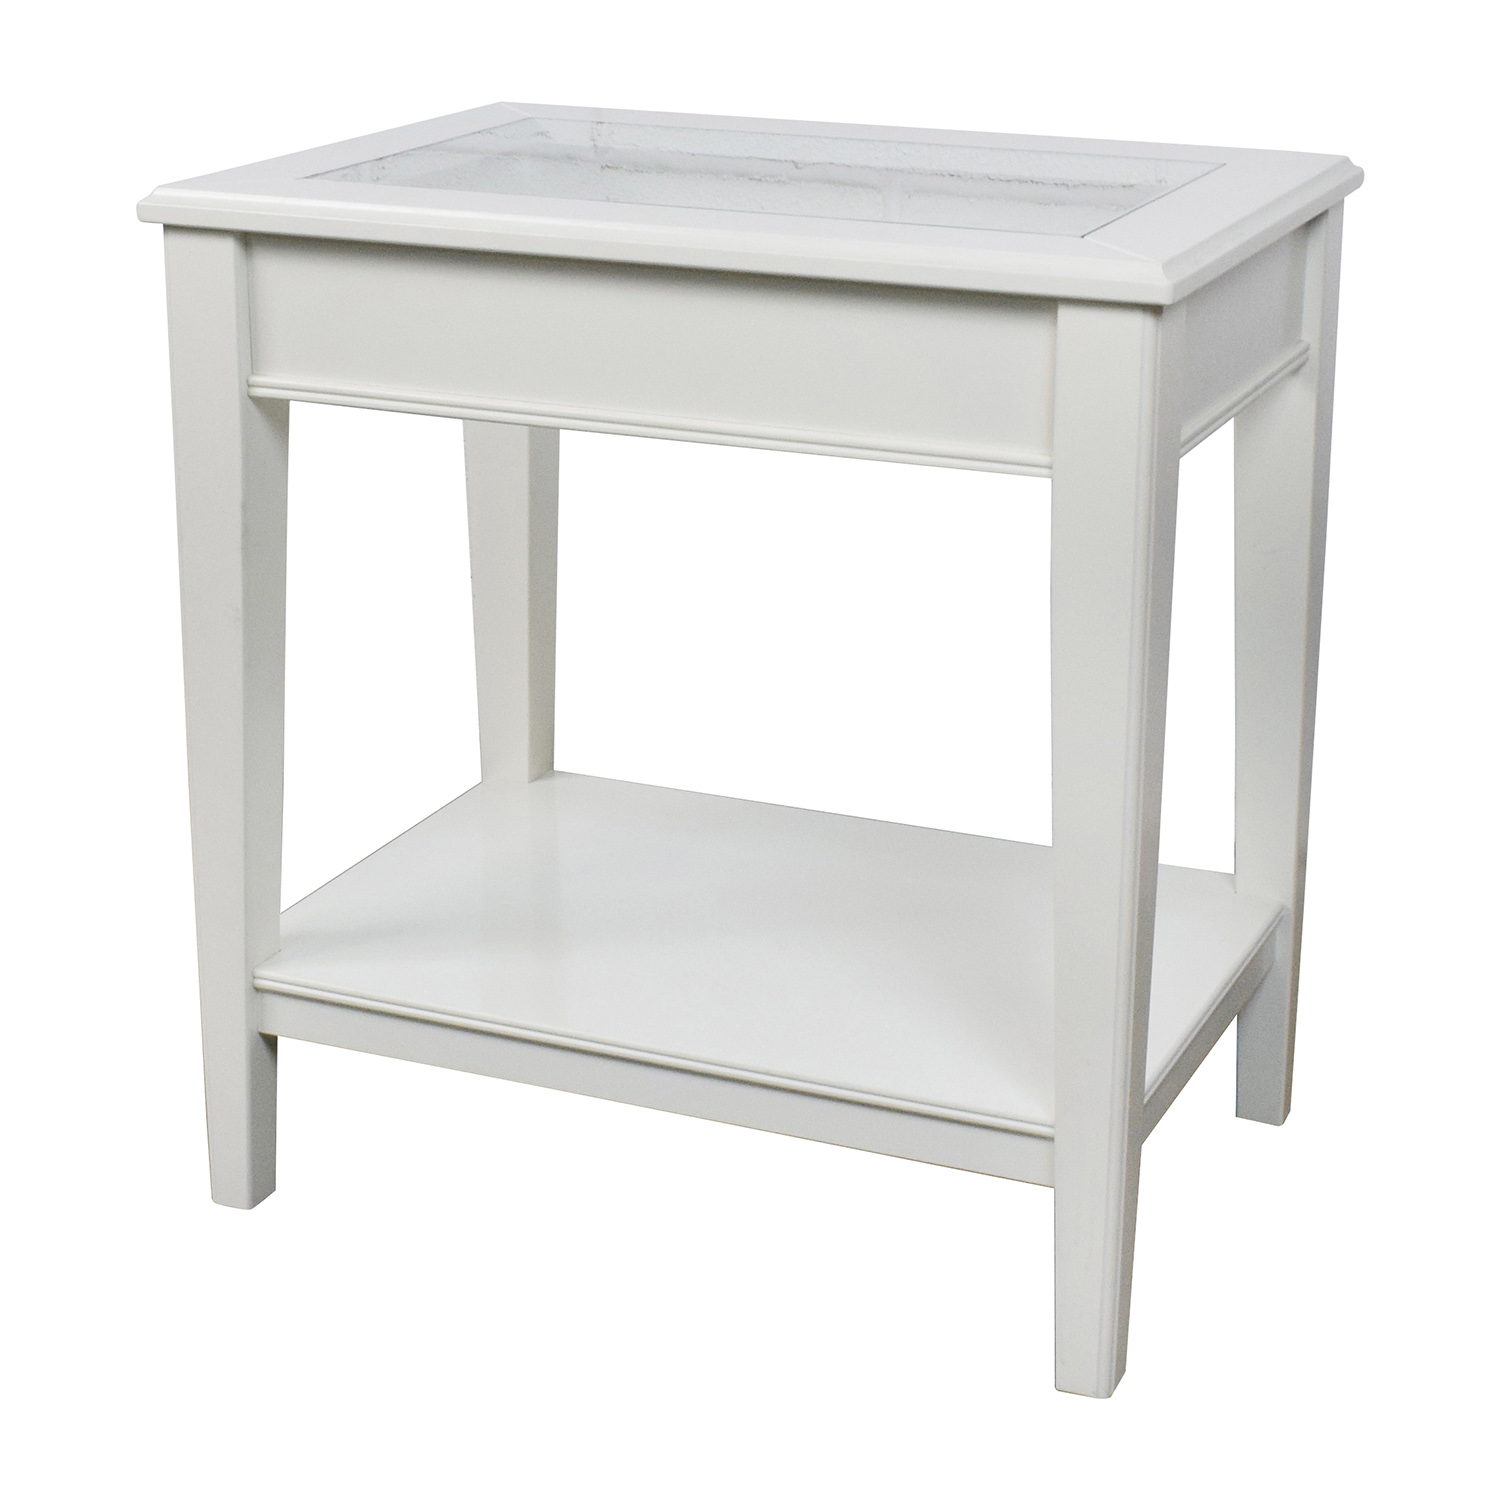 85 off west elm west elm white glass and wood side for White side table